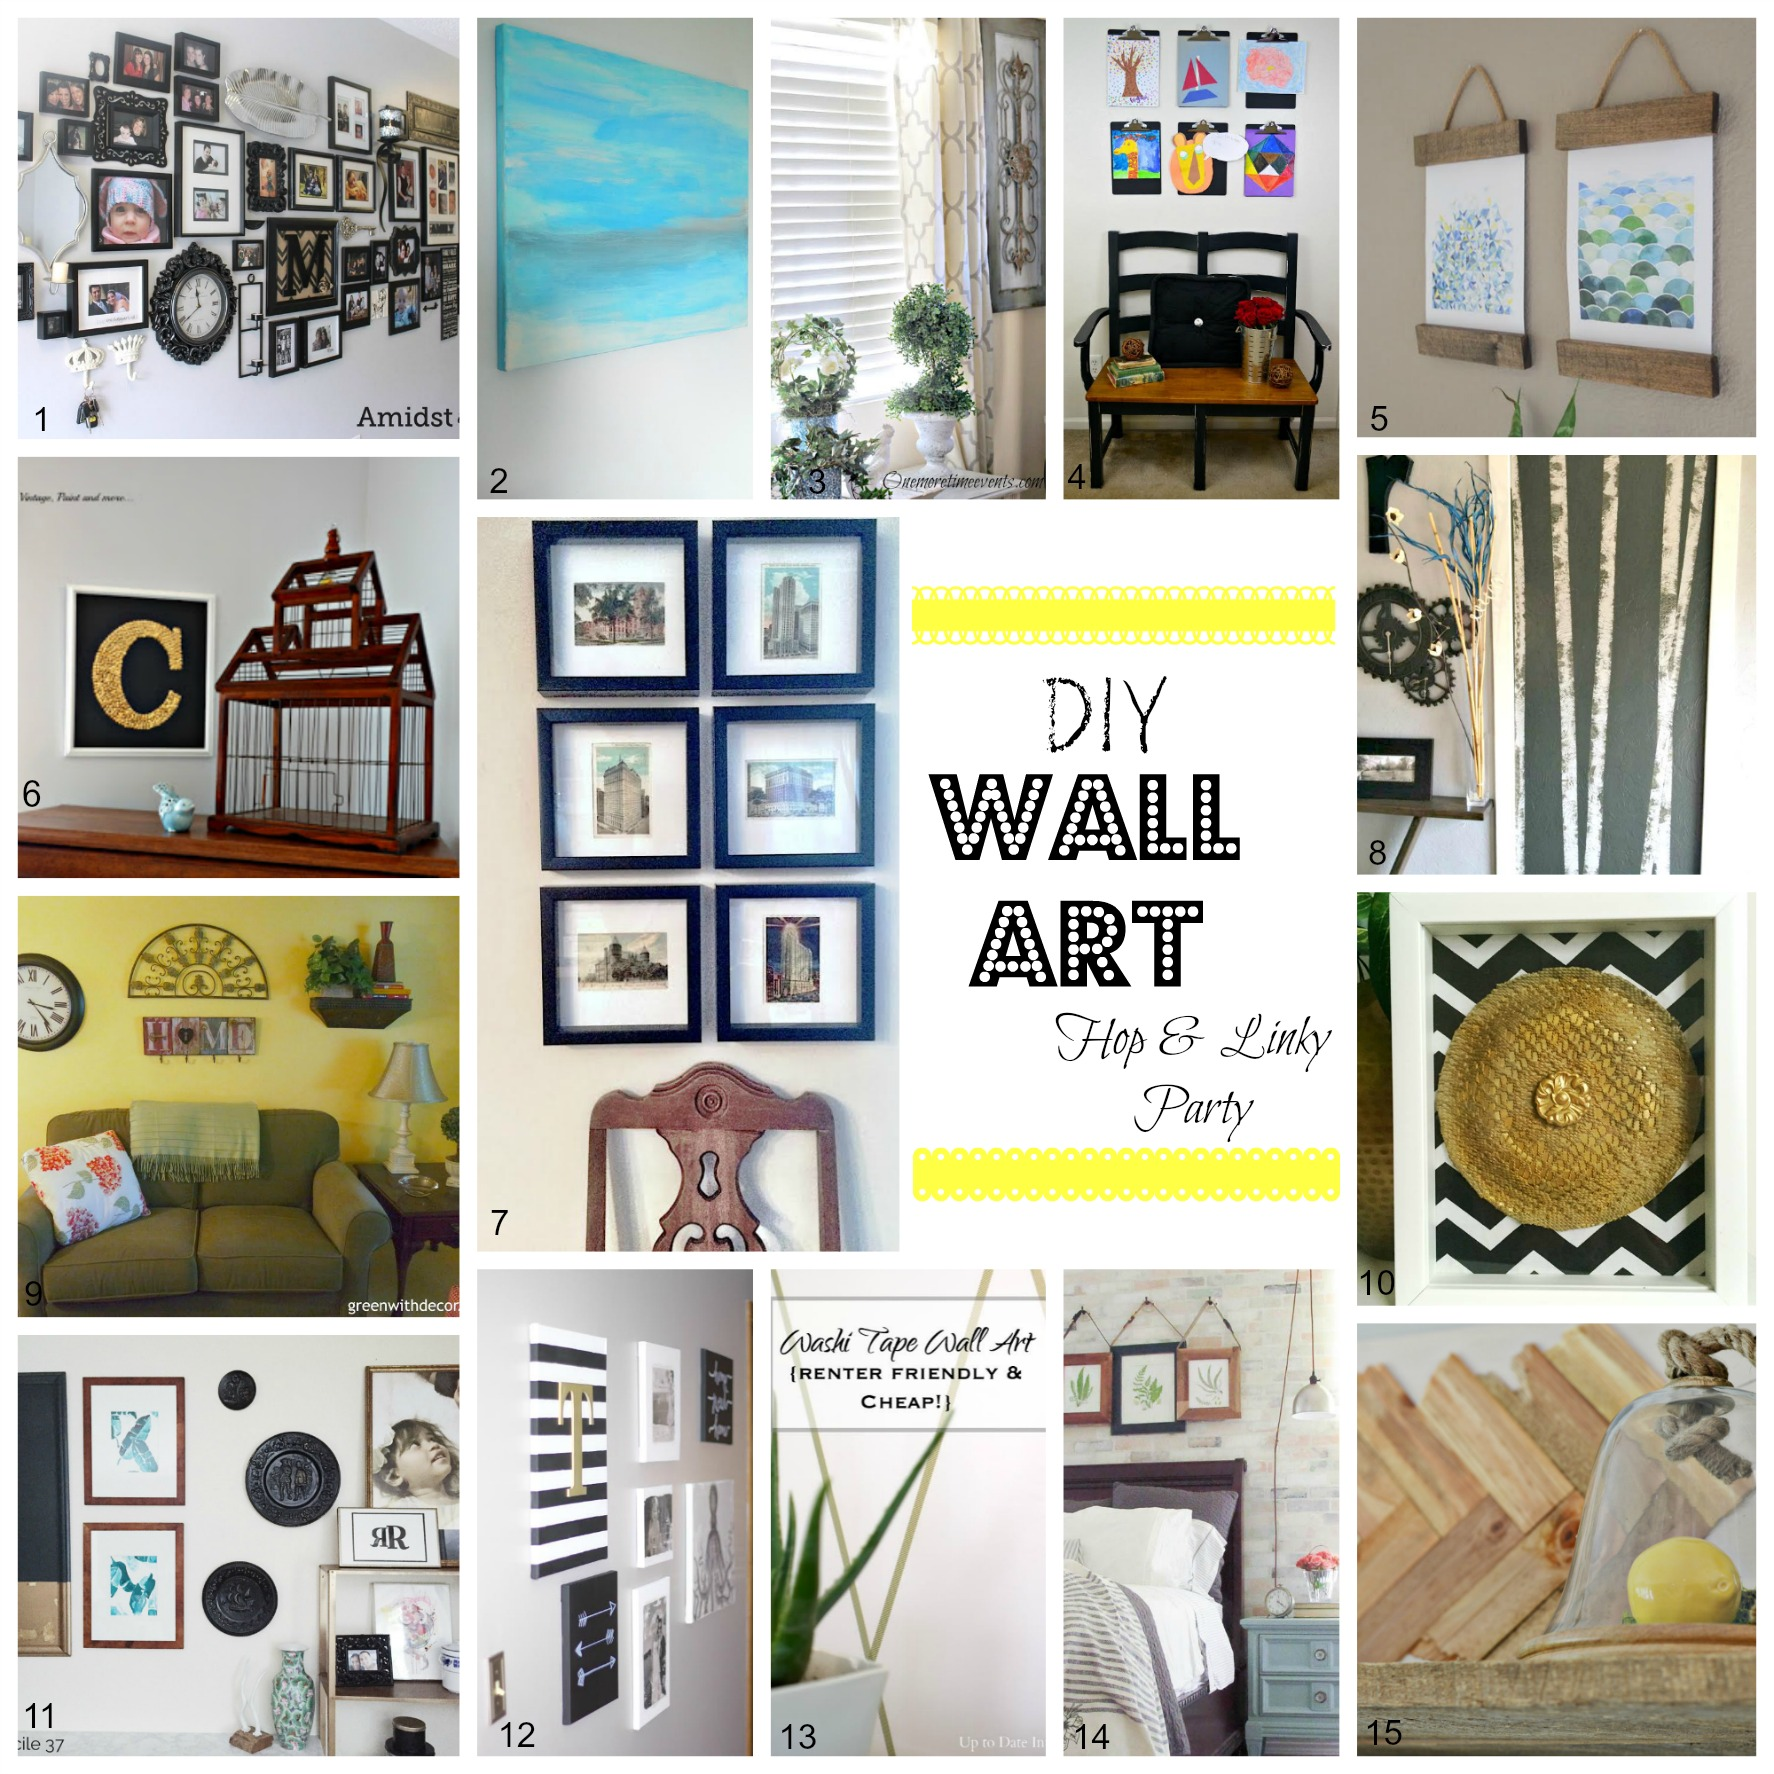 Diy romantic industrial frames wall art blog hop pocketful of posies solutioingenieria Gallery